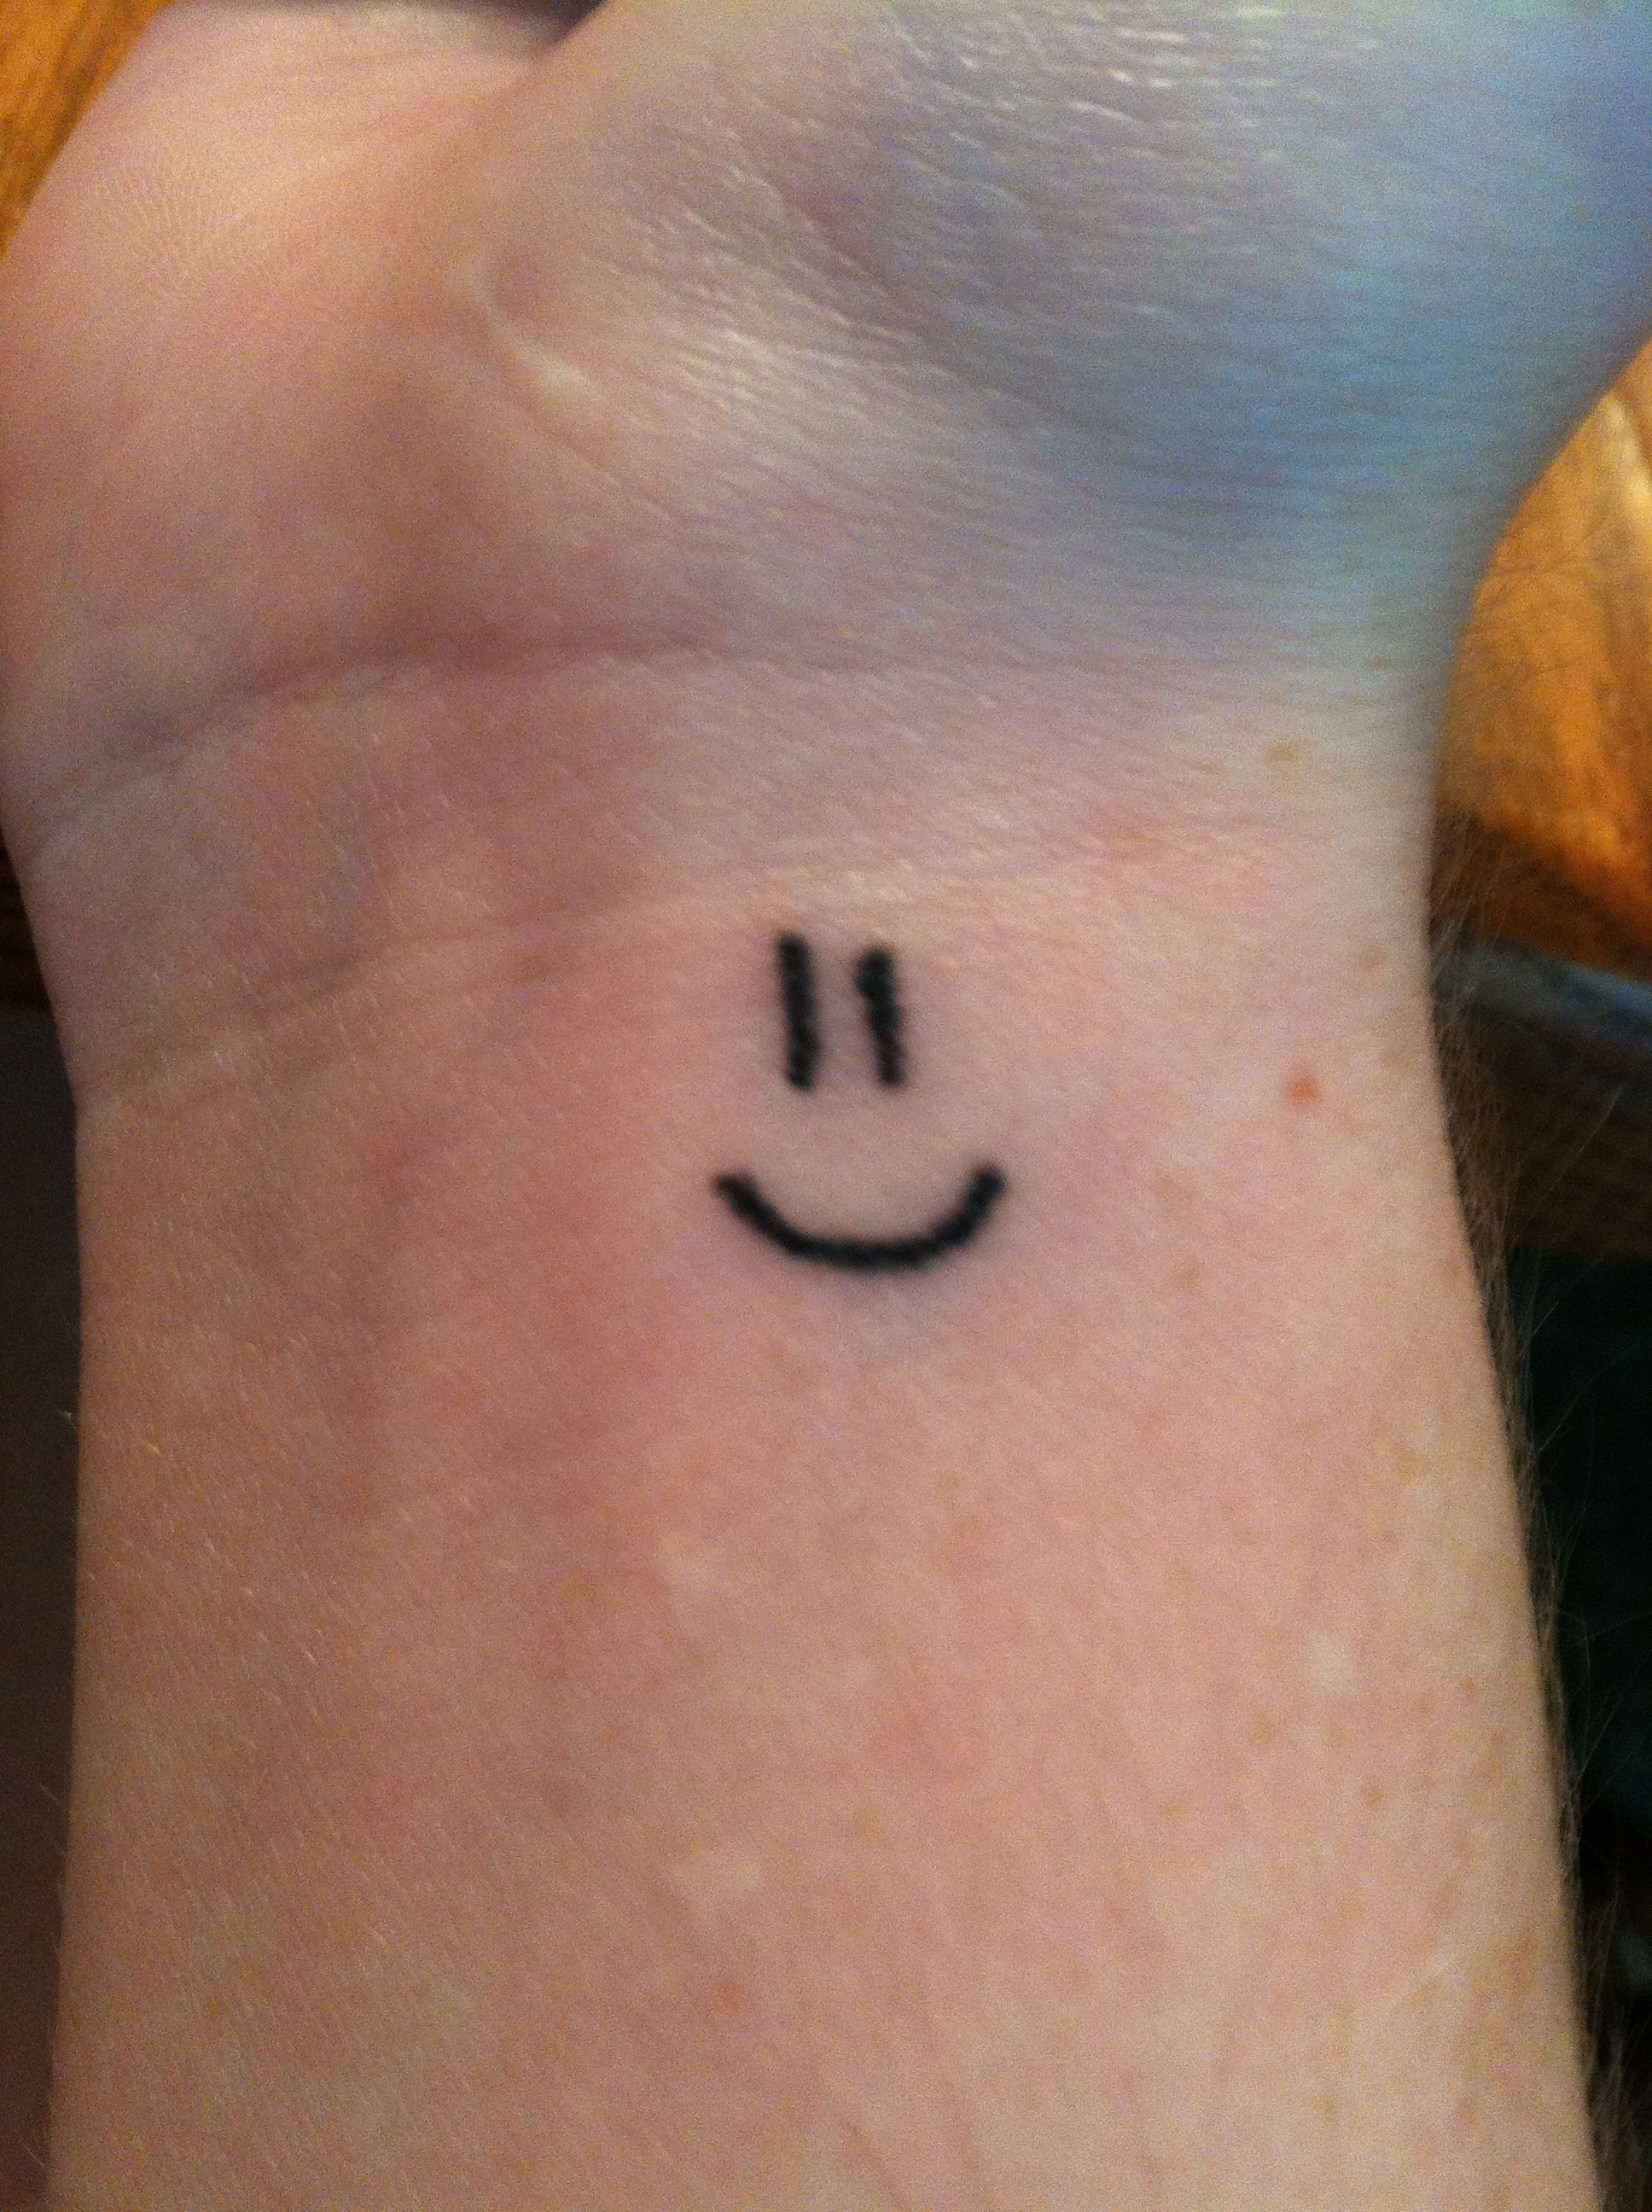 Smiley face Tattoo Smiley face tattoo, Smile face tattoo